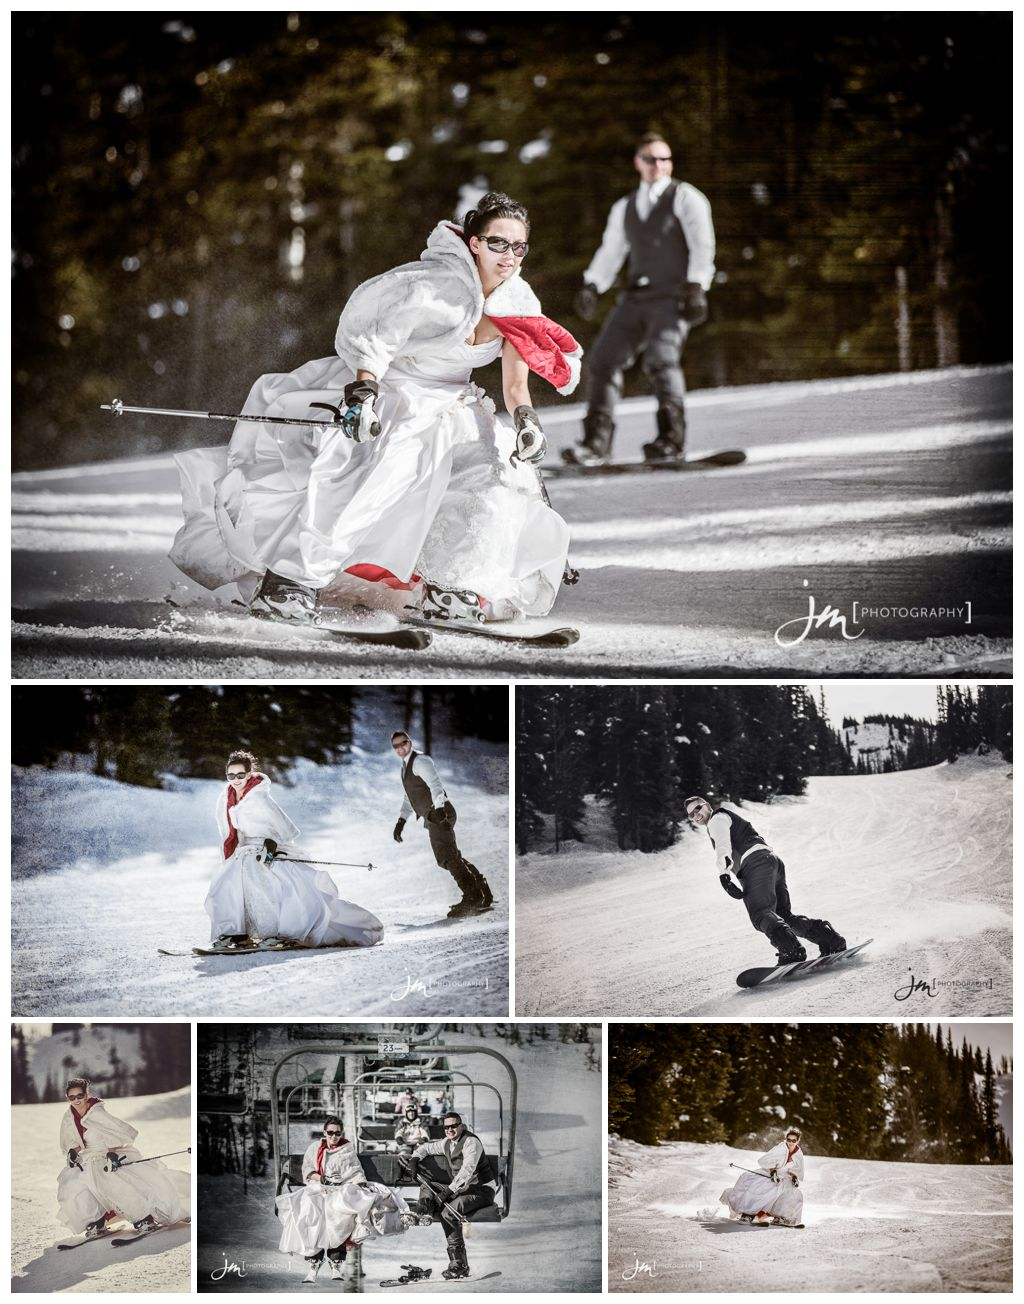 150224_9024-Banff-Wedding-Photographer-JM_Photography-Jeremy-Martel-Sunshine-Village